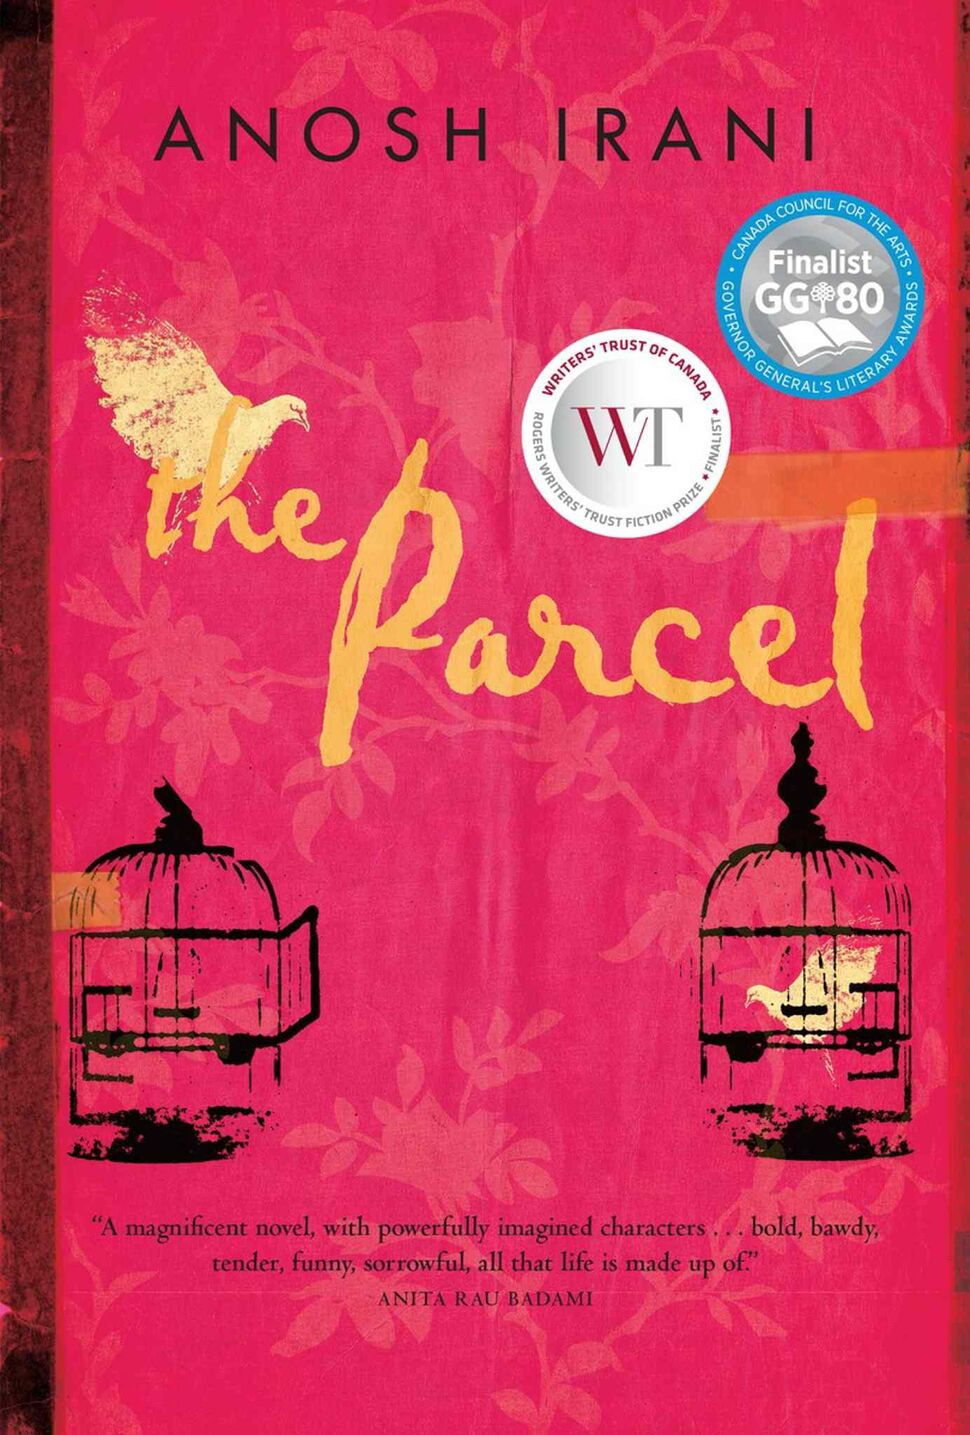 "<h3>The Parcel</h3> <br/> By Inosh Irani <br/> <strong>In well-regarded Canadian writer Inosh Irani's latest novel, the insular world of the long-established ""Hijra"" or ""third sex"" of India is examined in all its pain, depth and occasional beauty. Difficult but luminous.</strong> <br/> — Lara Rae"